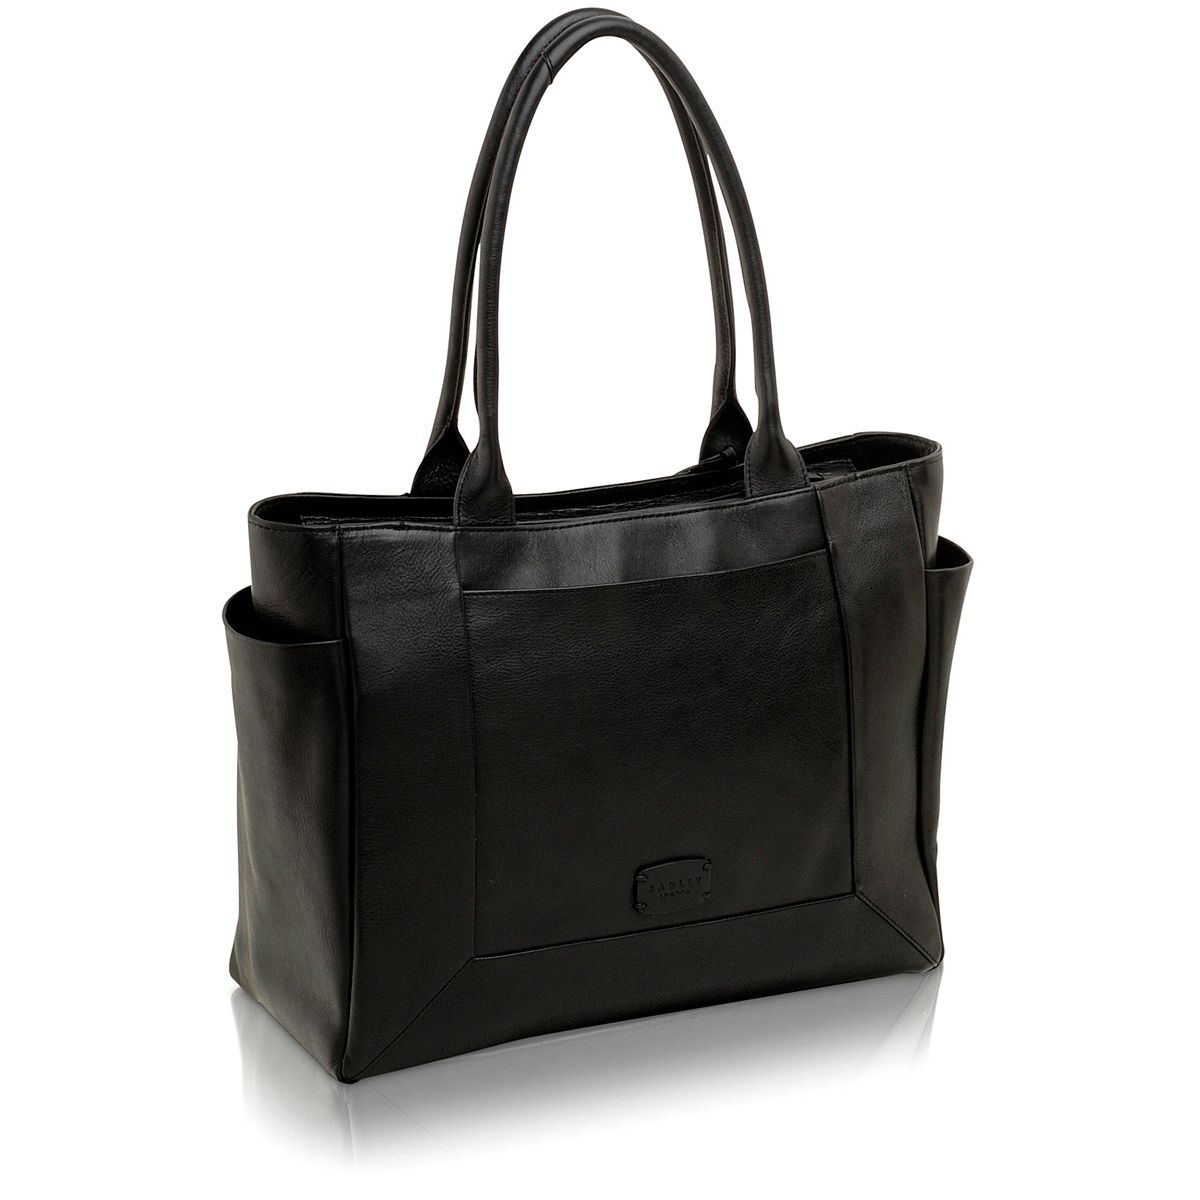 Border large black leather tote bag